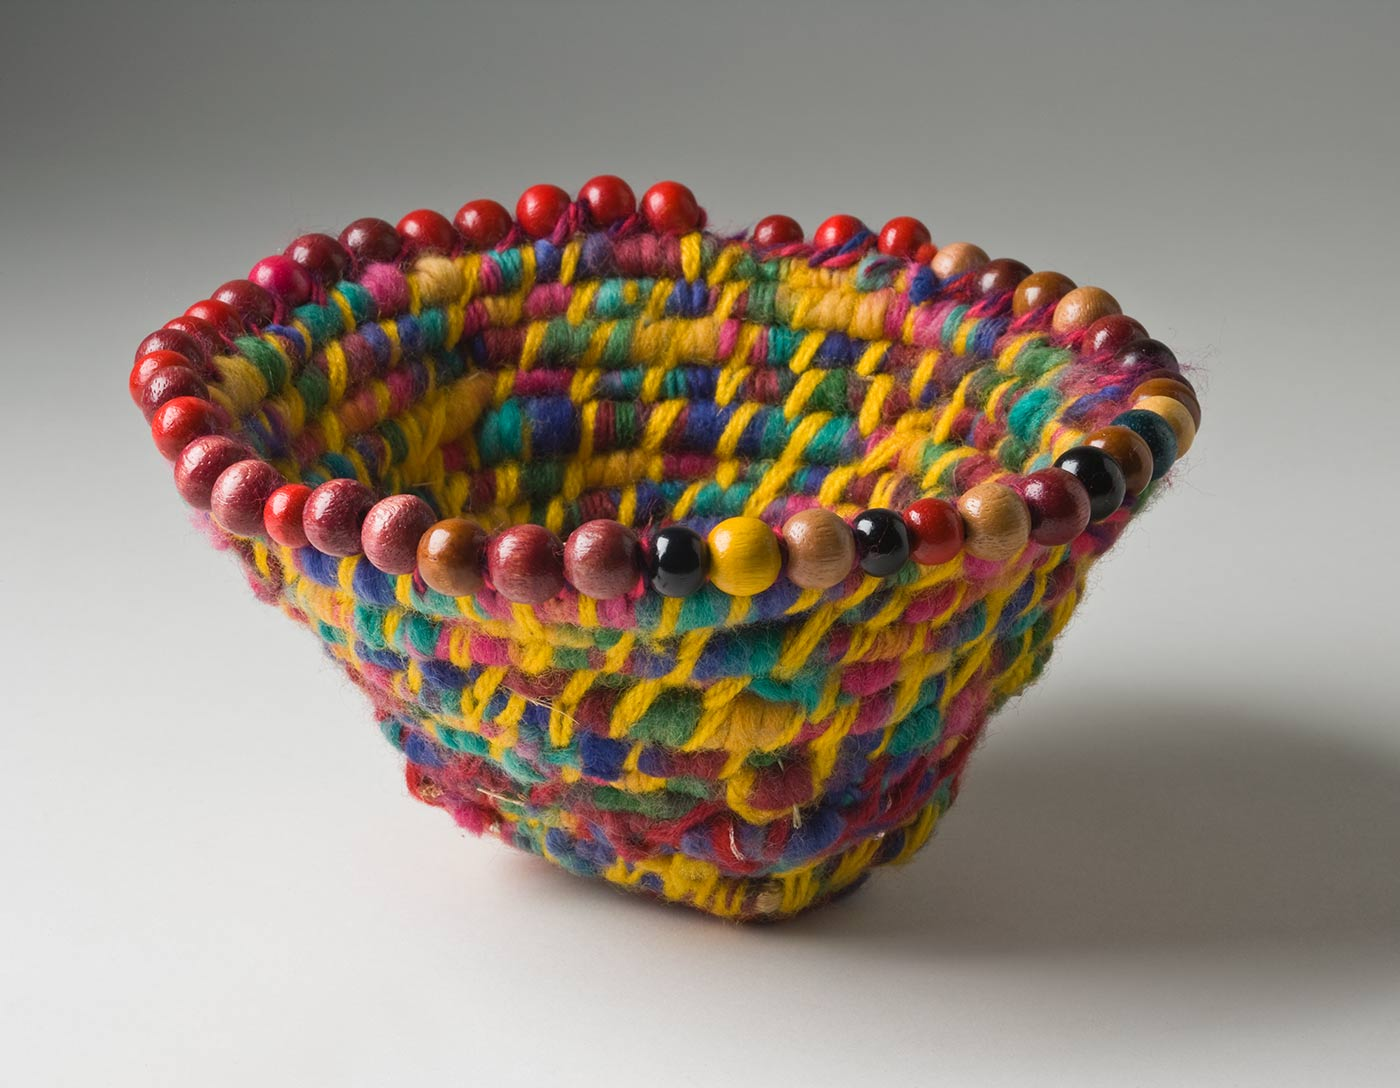 A funnel shaped basket of multicoloured coiled yarn over plant fibre with a beaded edge. The yarn is rainbow coloured with a dominant yellow tone. The maroon yarn used at the base has small silver sequins in it. The round wood beads attached at the top edge of the basket are mostly red and brown with a few green, yellow, black and natural coloured ones. - click to view larger image